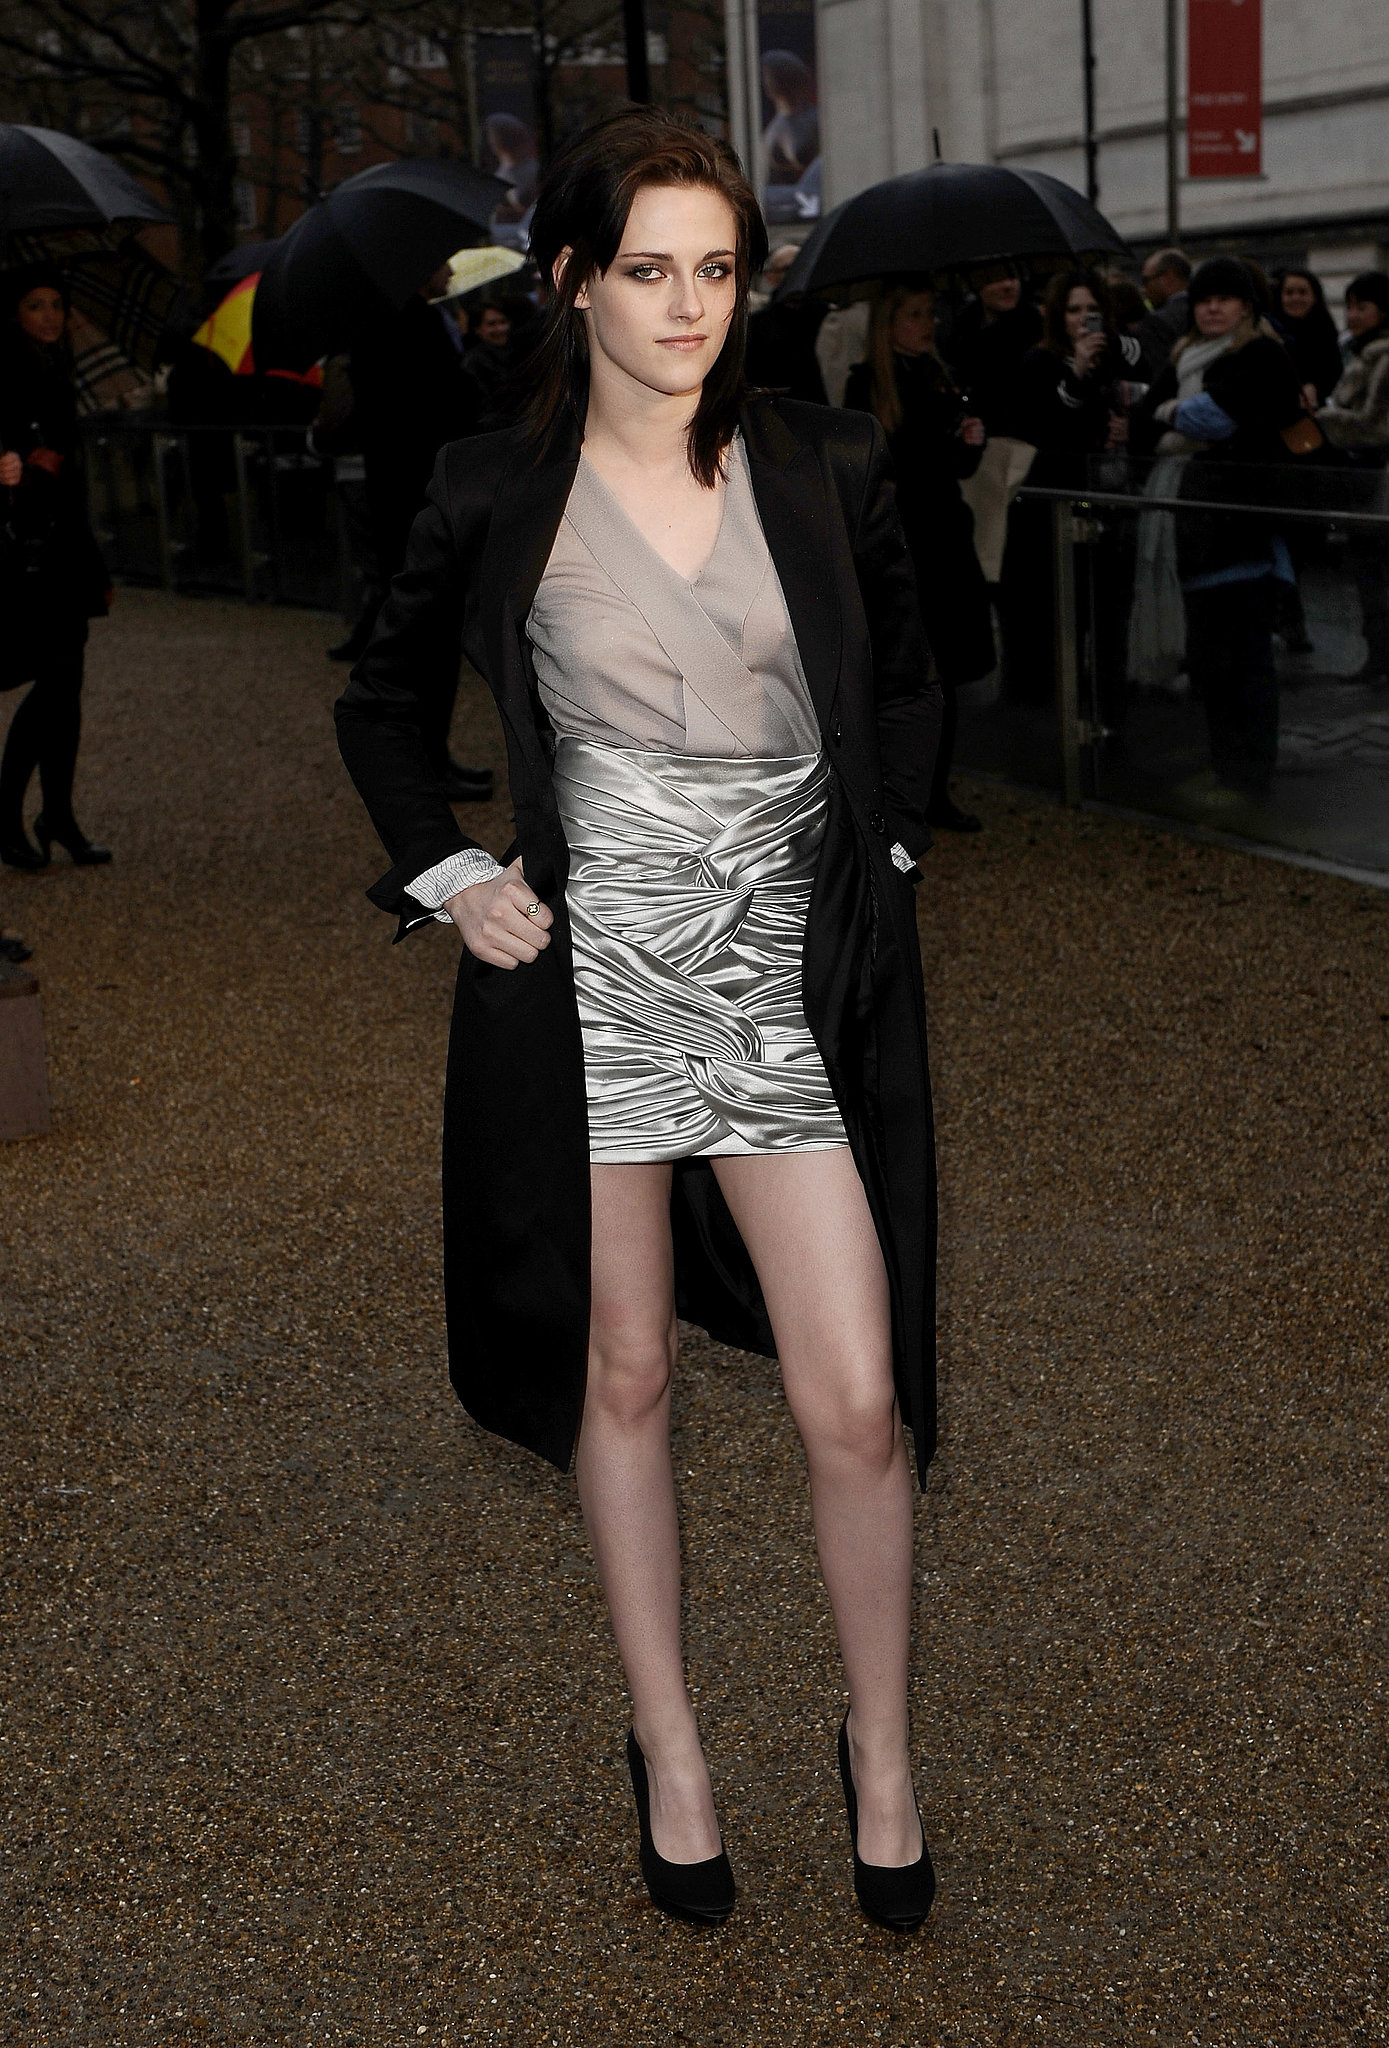 During London Fashion Week Autumn/Winter 2010, Stewart made a statement in a metallic silver Burberry miniskirt.